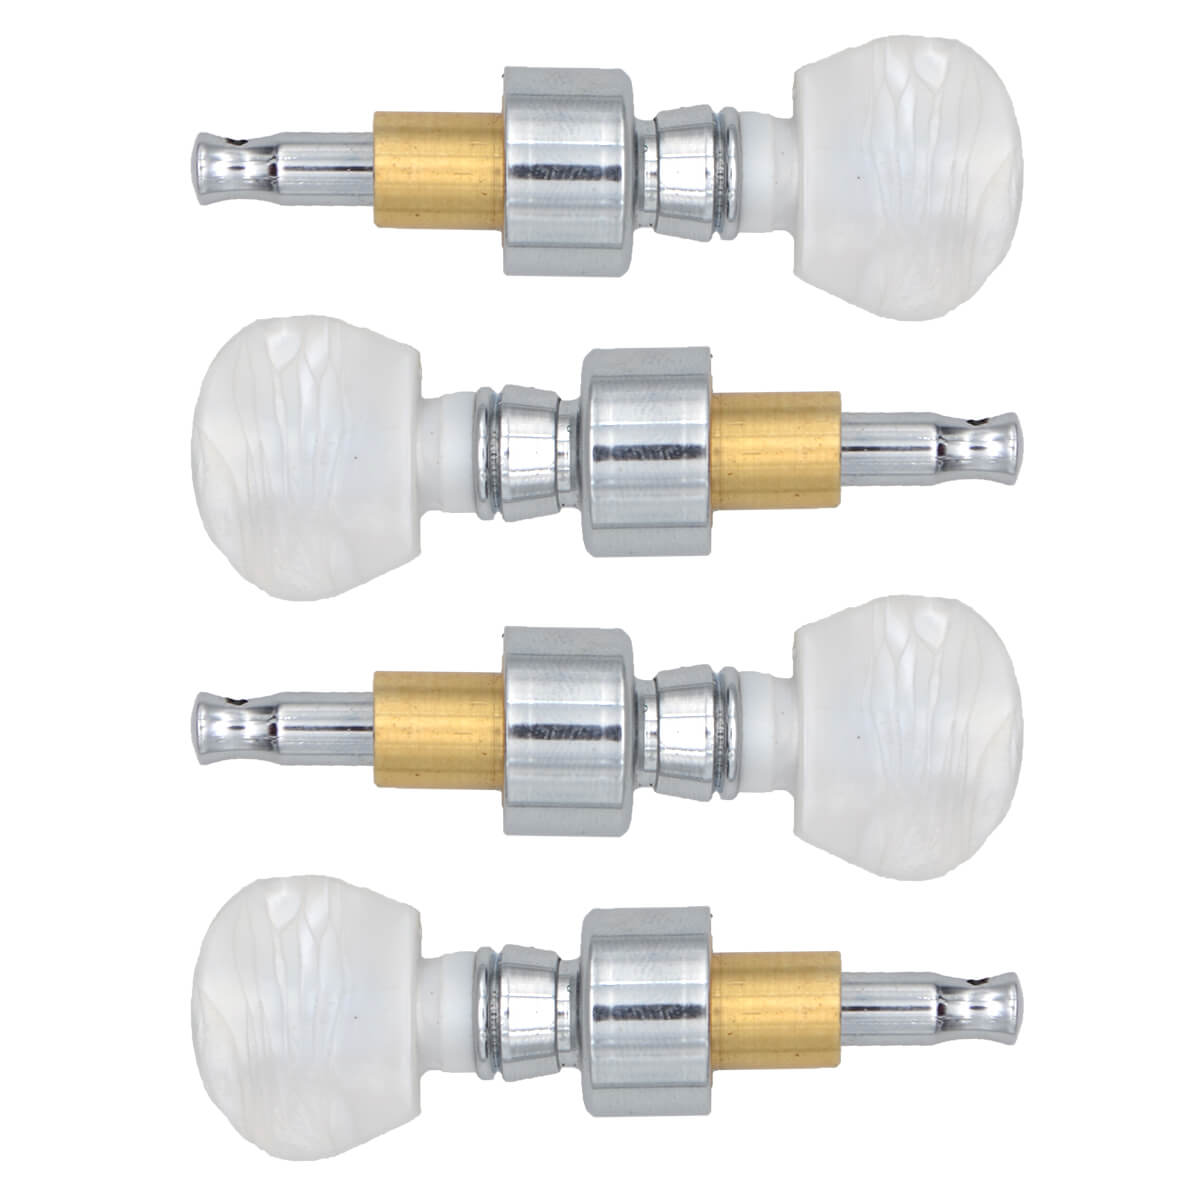 Planetary Banjo Tuner Pegs: Set of 4